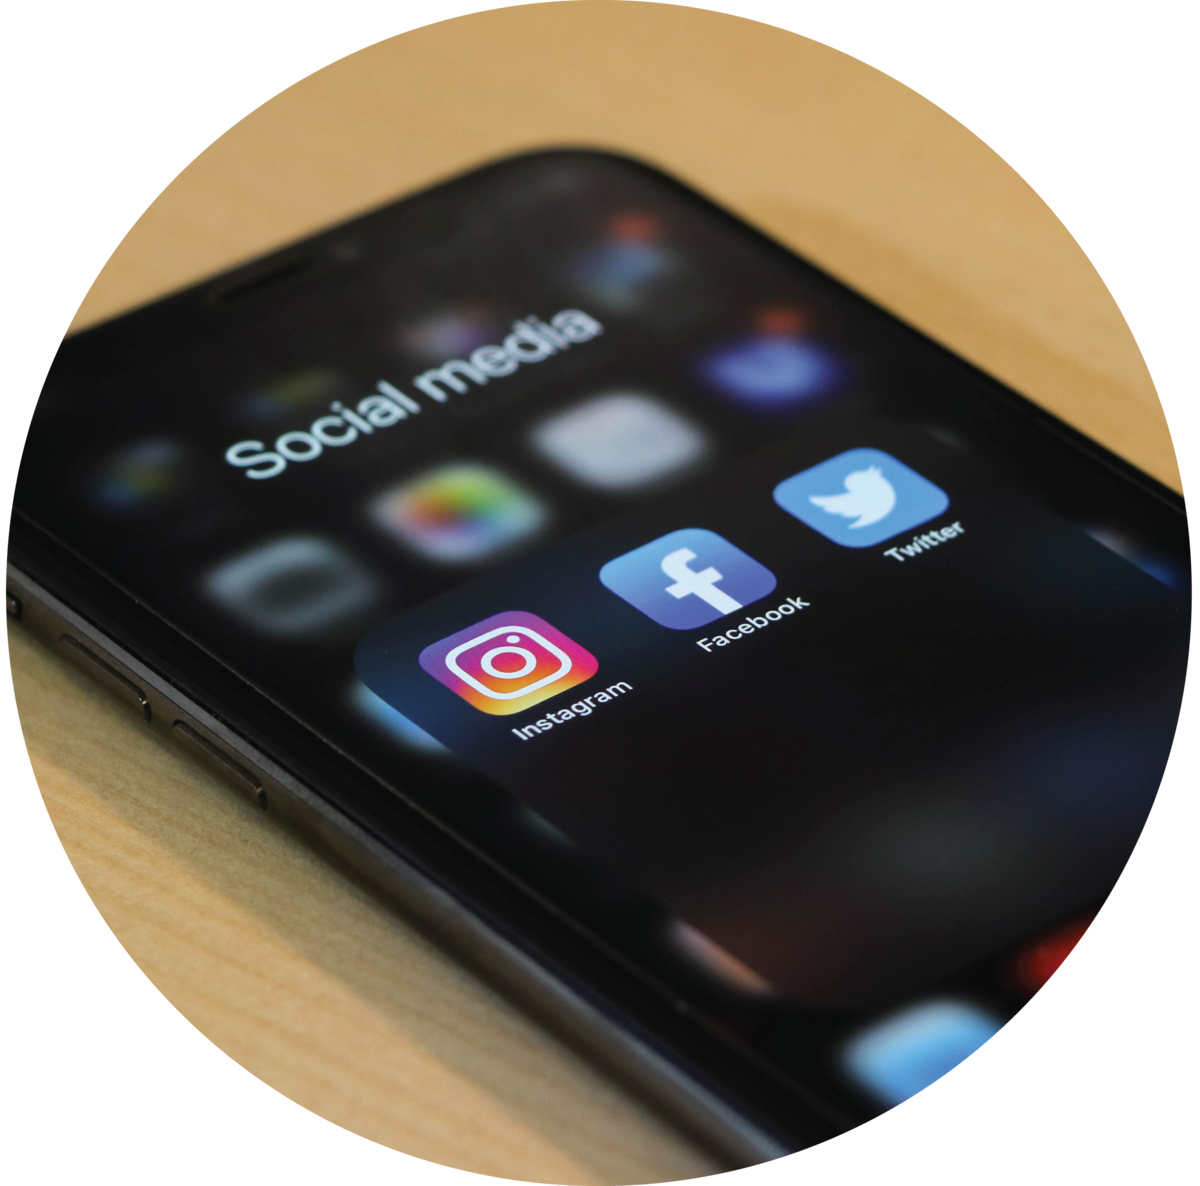 An iPhone showing icons for Instagram, Facebook, and Twitter apps